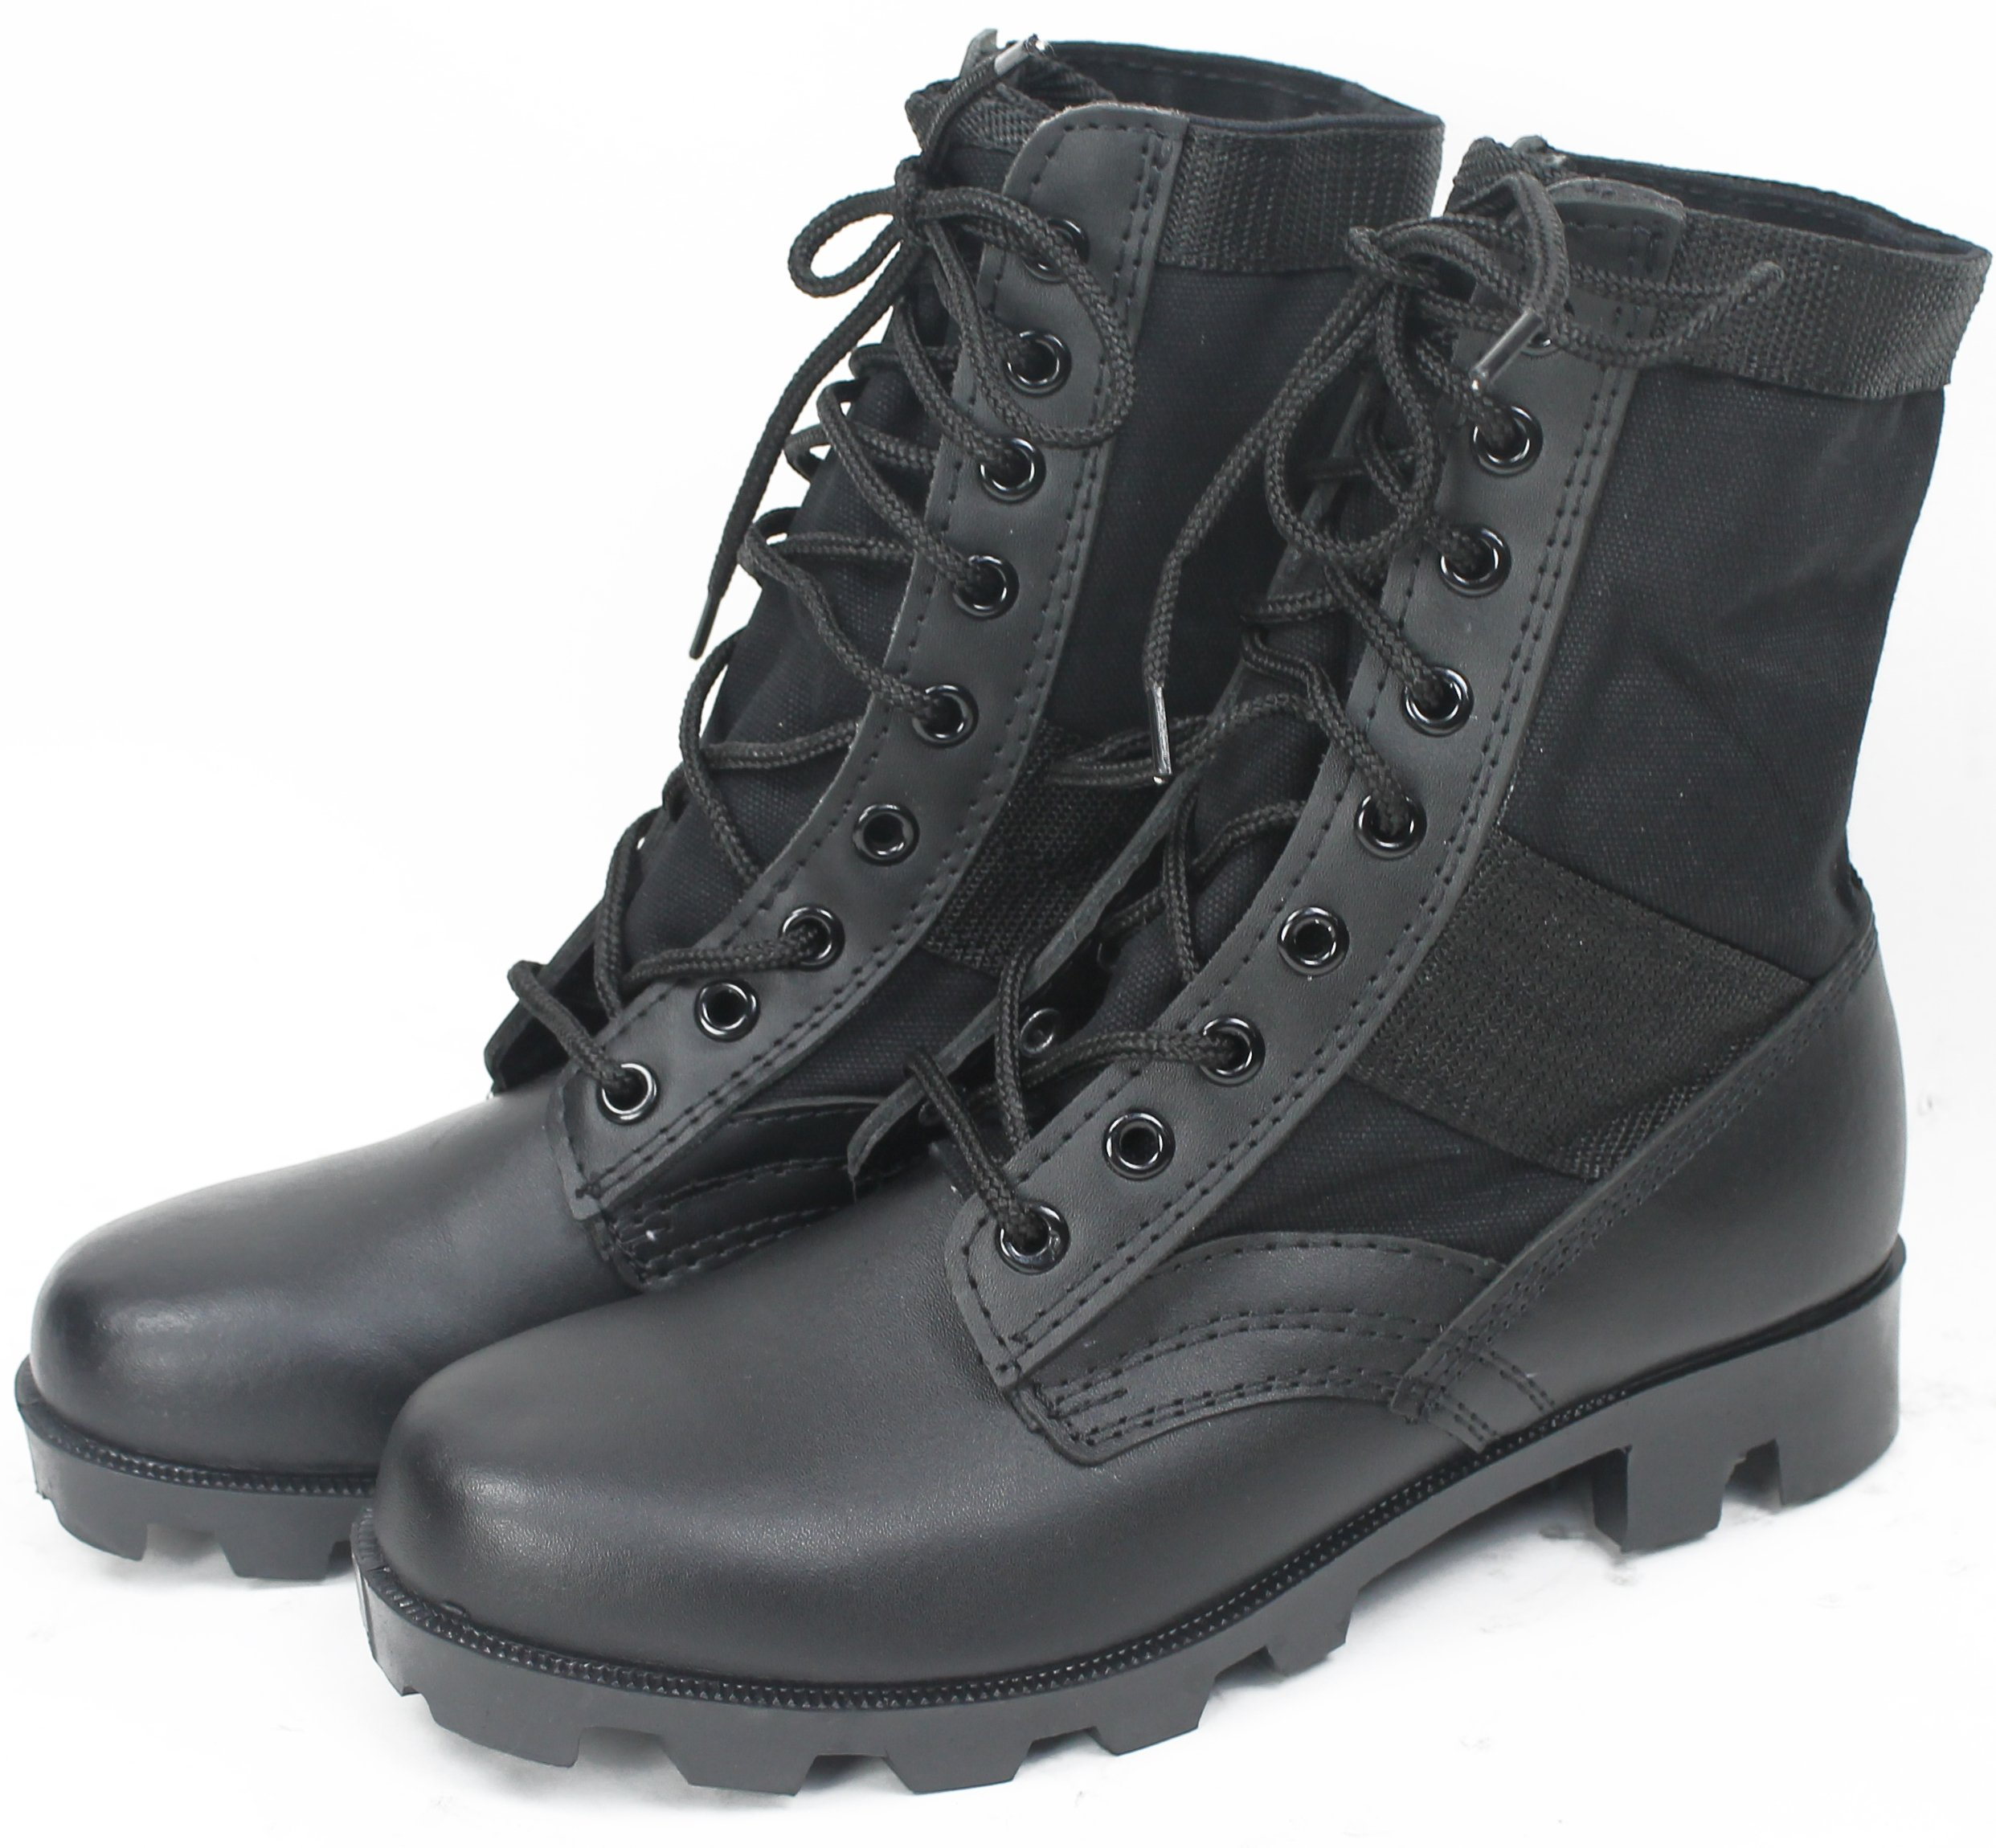 Black Panama Sole Military Leather Jungle Boots, Size 8 Wide